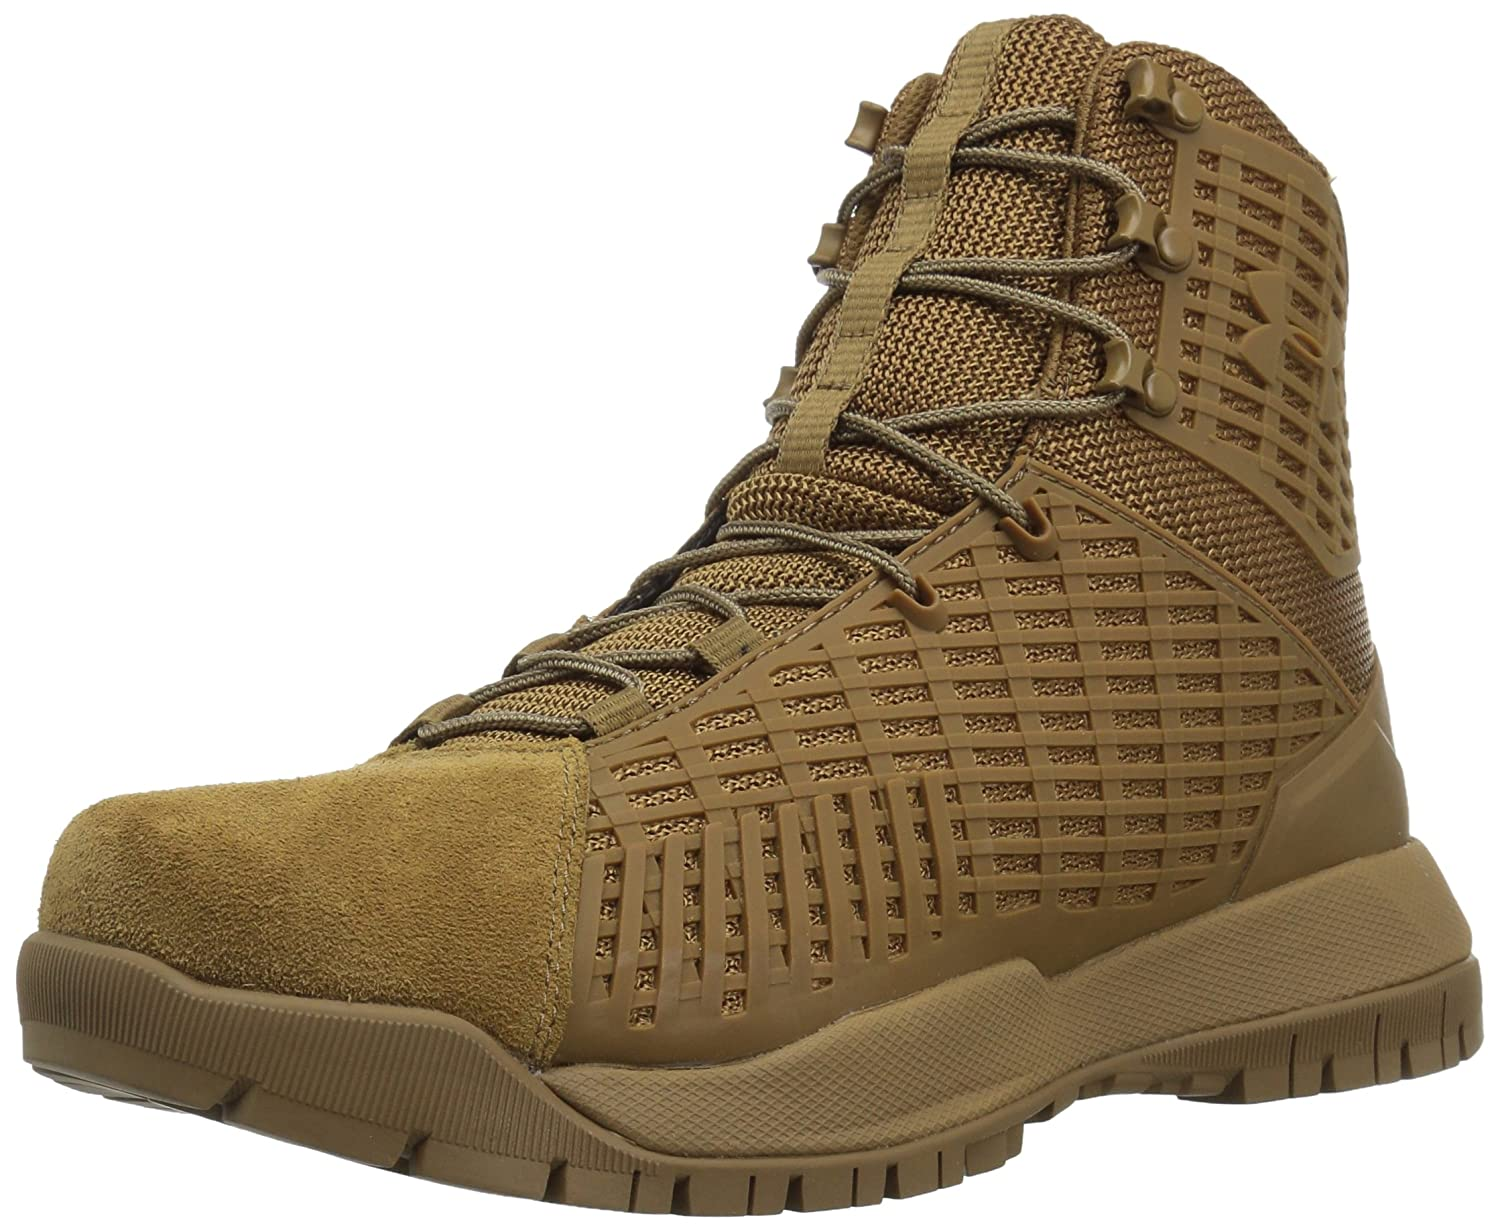 Under Armour Women's Stryker Military and Tactical Boot B01MRLR9LM 7.5 M US|Coyote Brown (728)/Coyote Brown